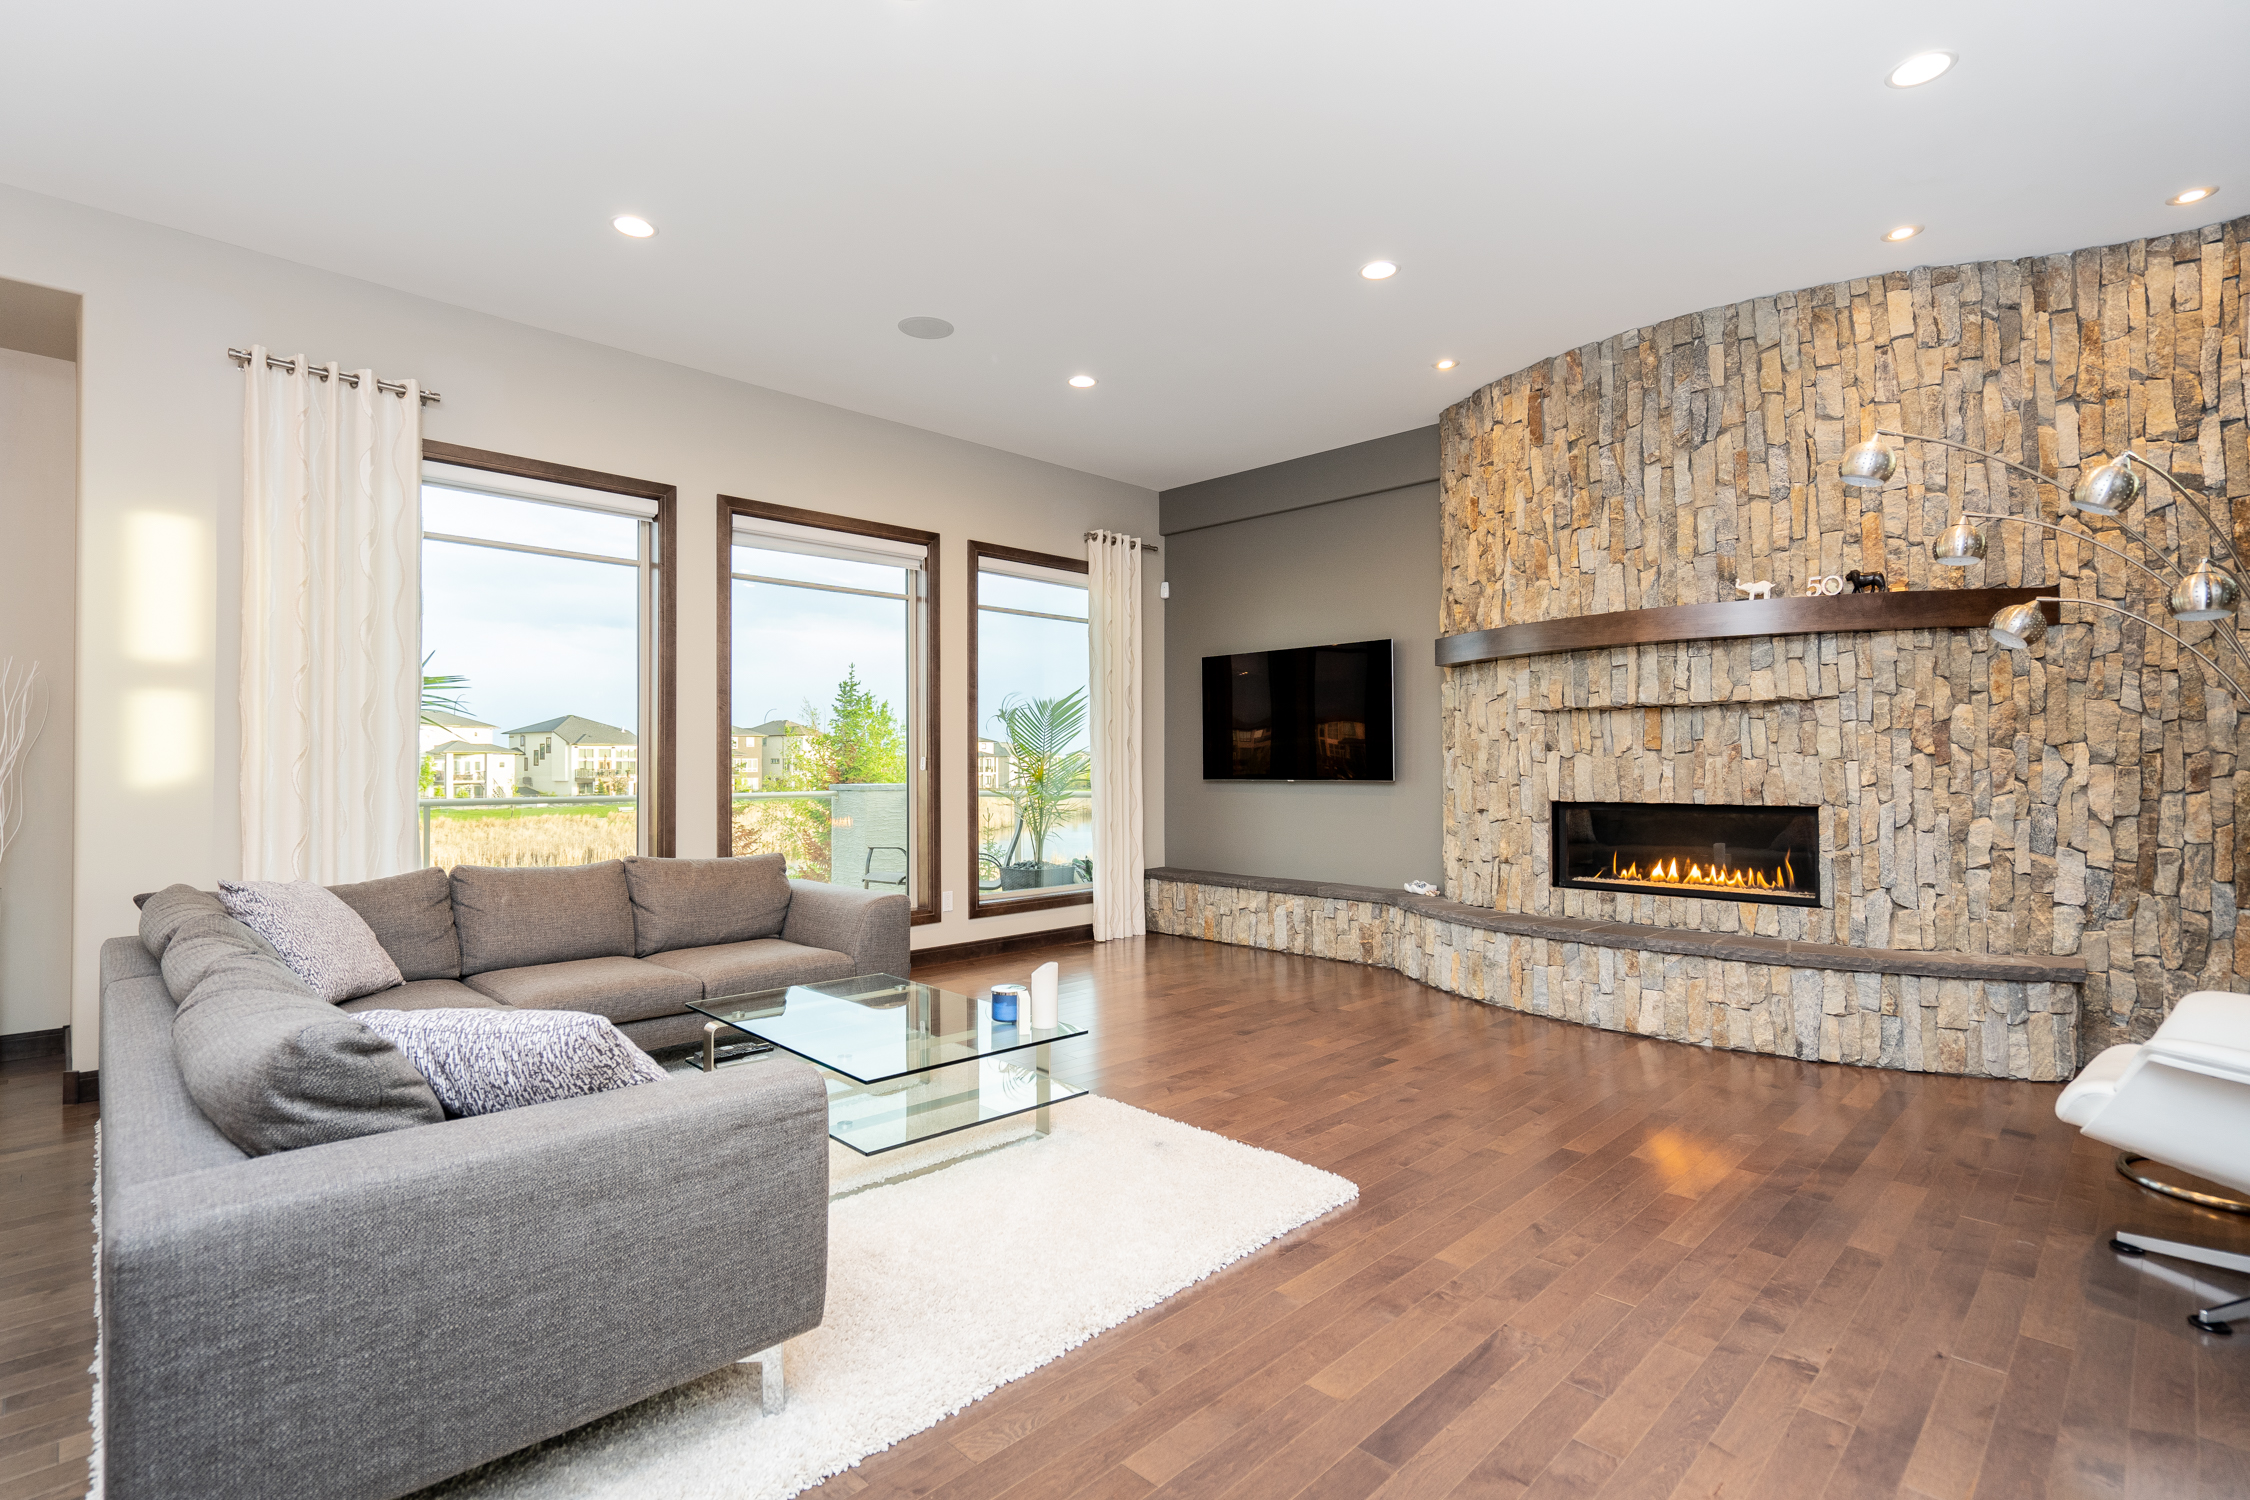 The fireplace adds warmth to a great living space.